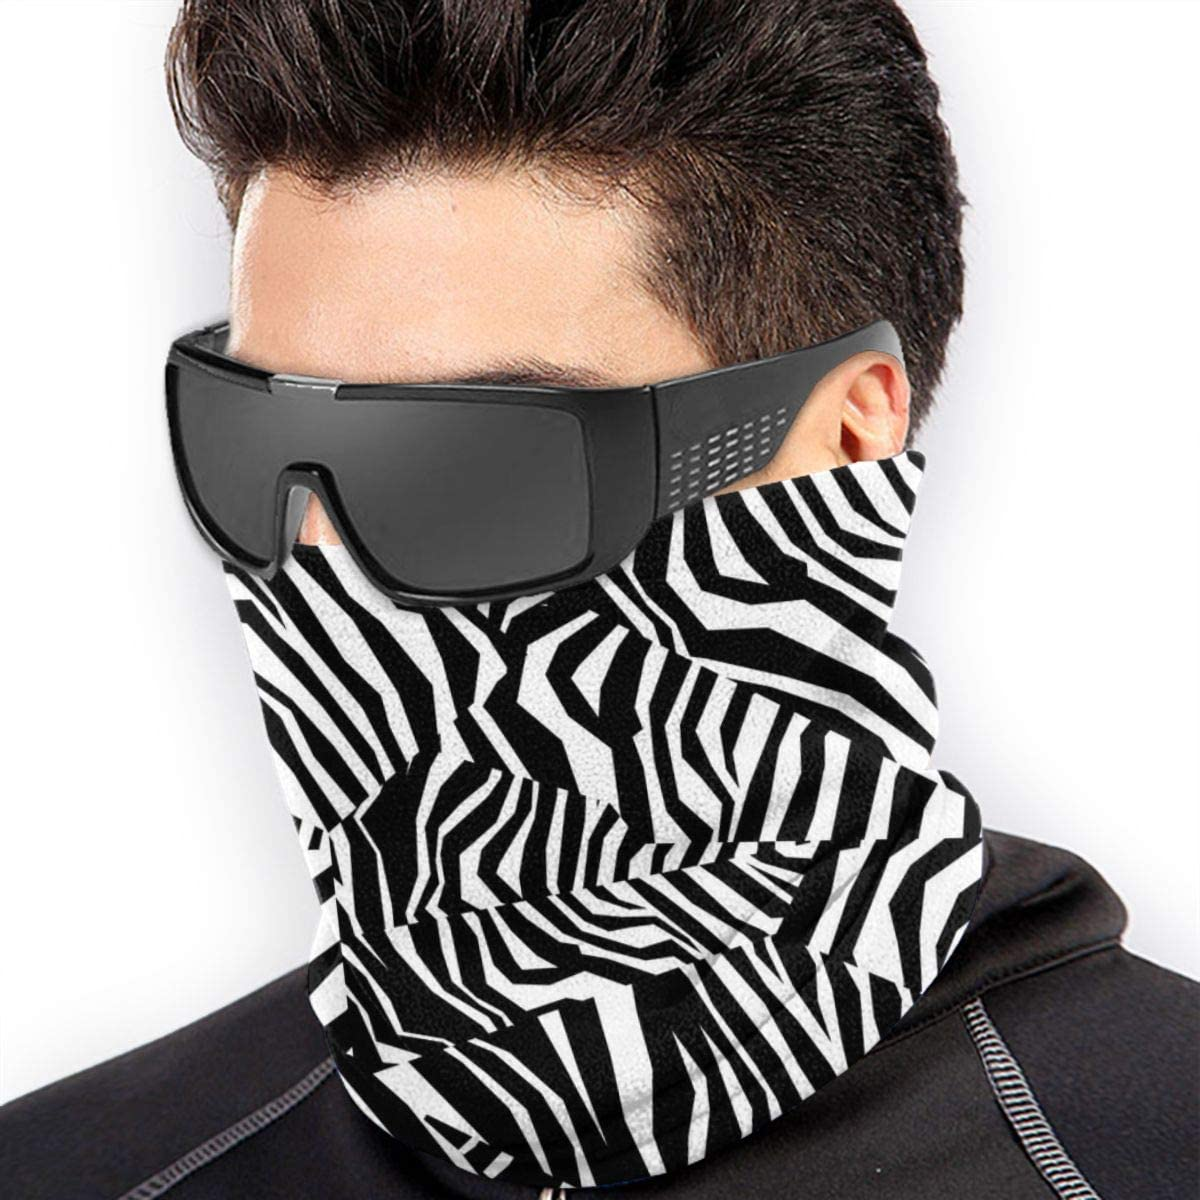 Seamless Animal Skin Texture of Zebra Unisex Winter Fleece Neck Warmer Gaiters Hairband Cold Weather Tube Face Mask Thermal Neck Scarf 9.8x11.8 inch